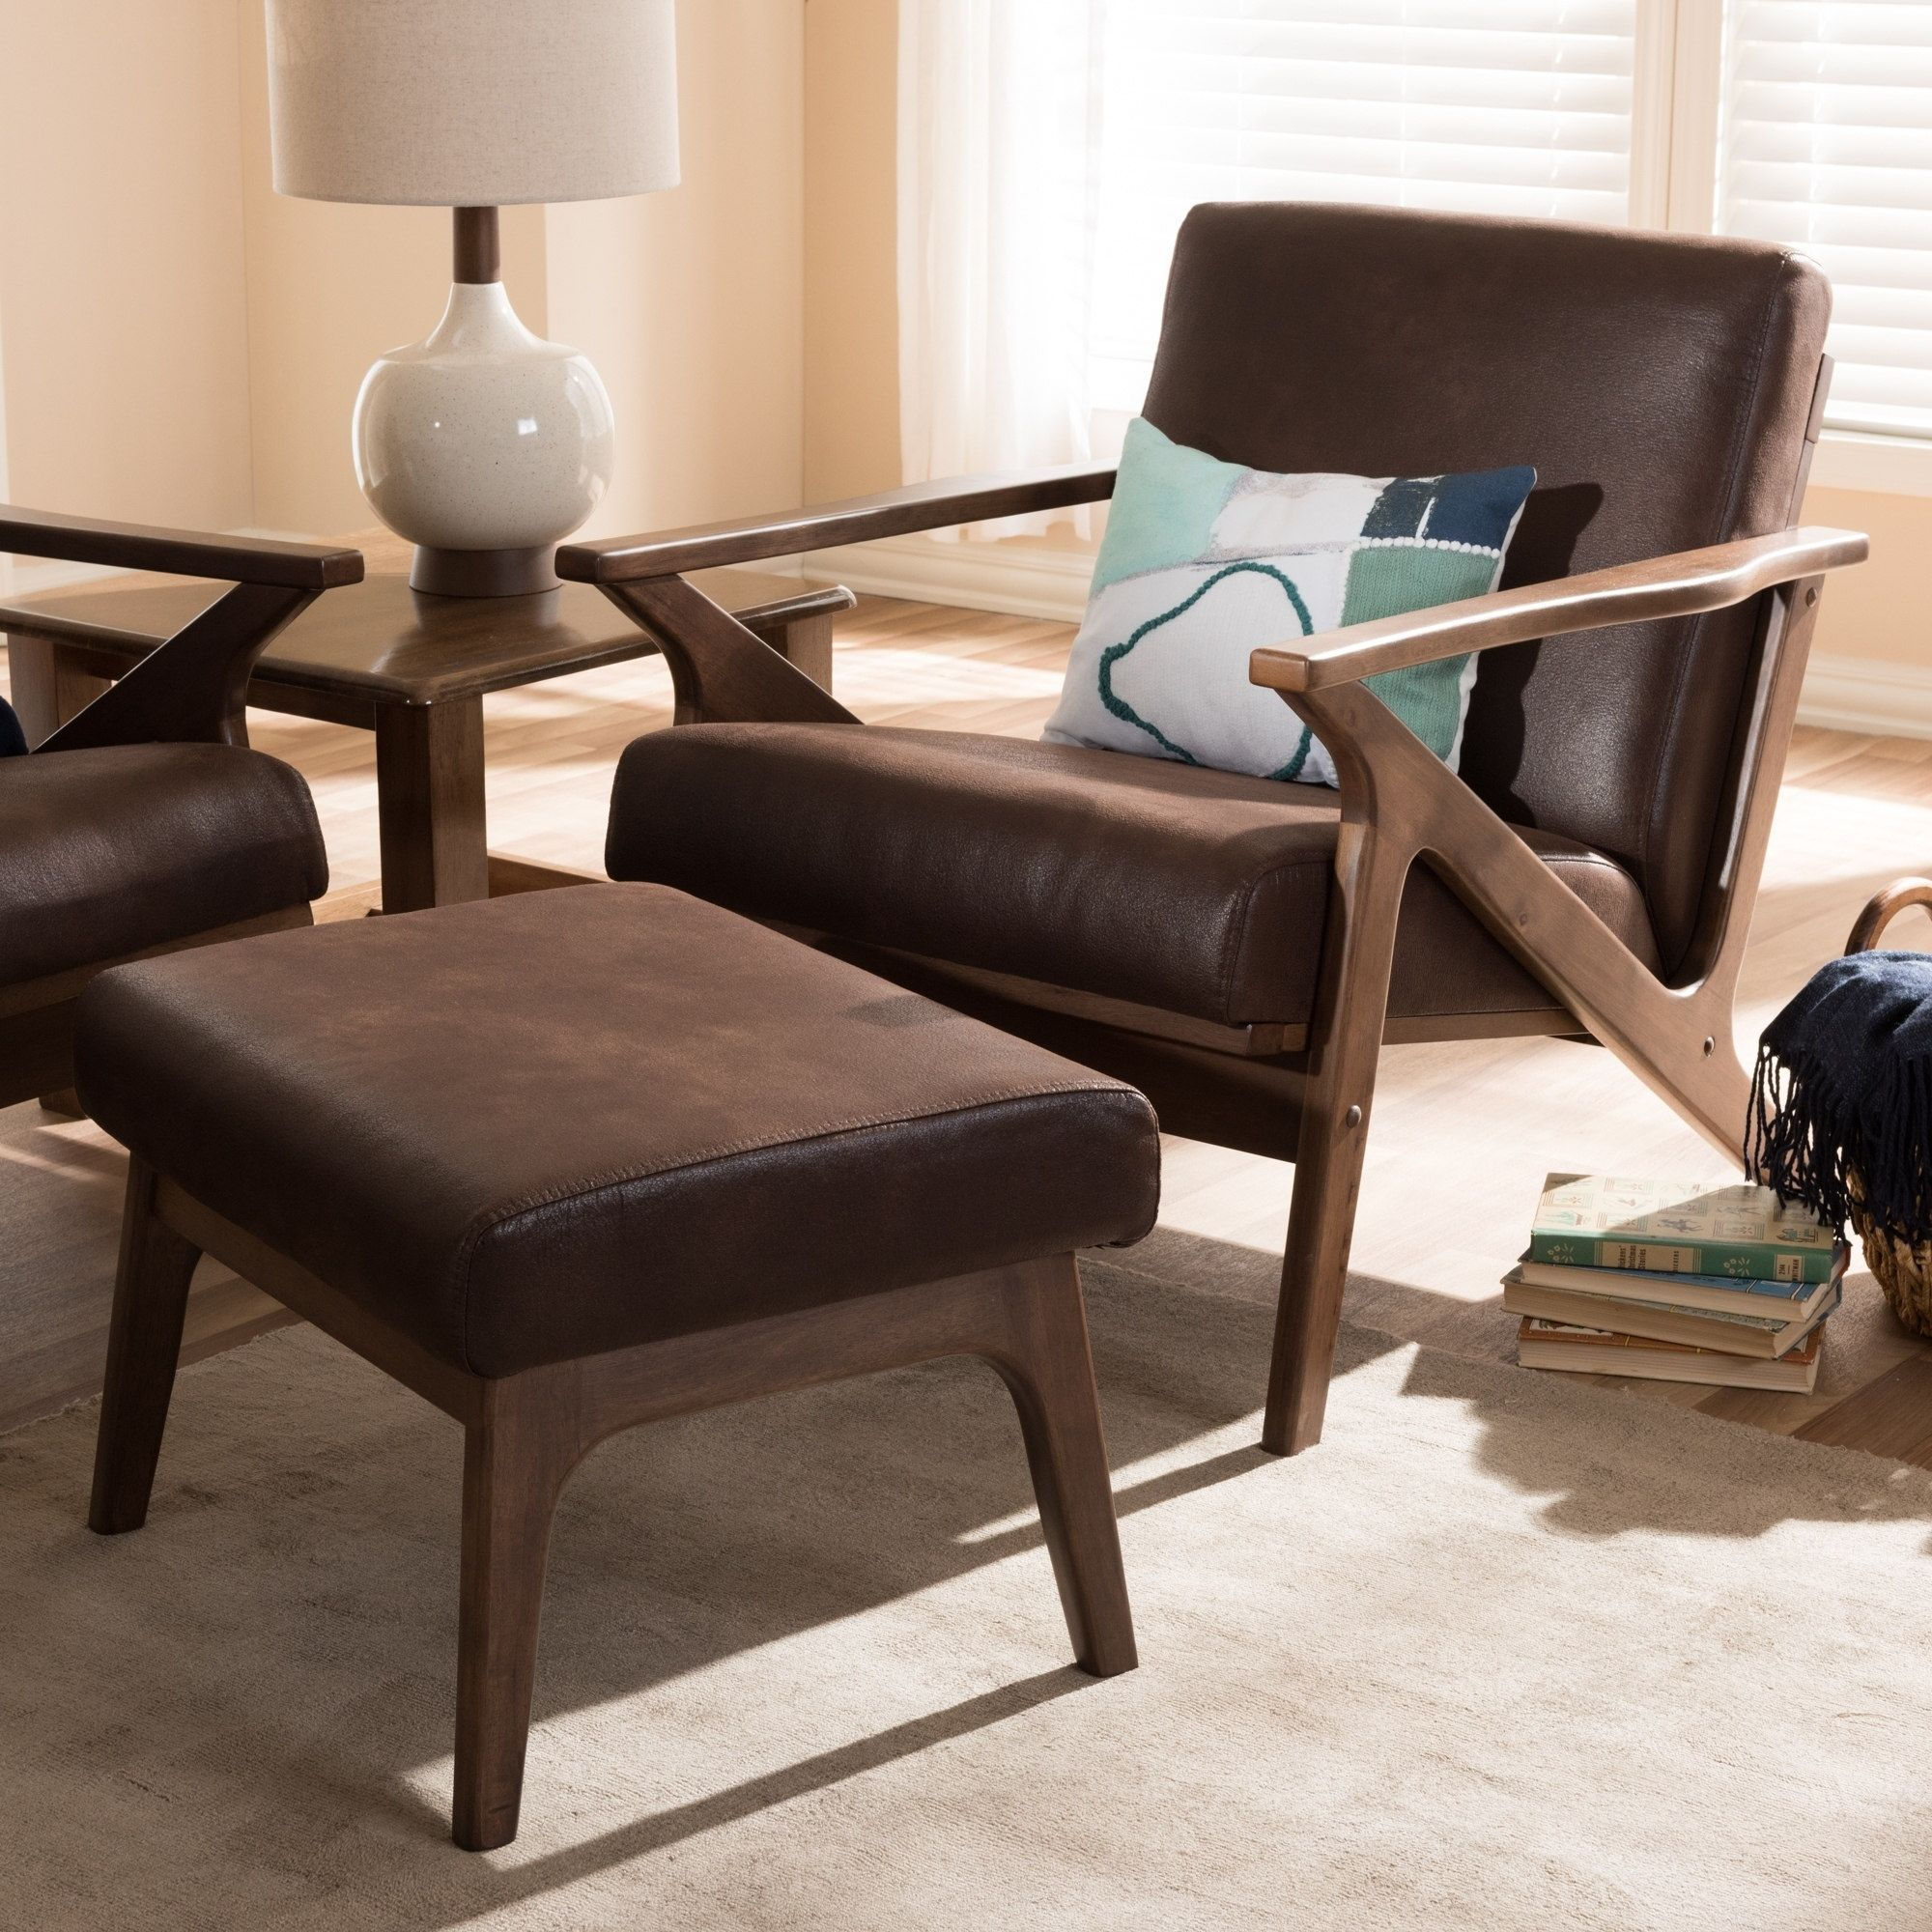 MidCentury Lounge Chair and Ottoman Set by Baxton Studio